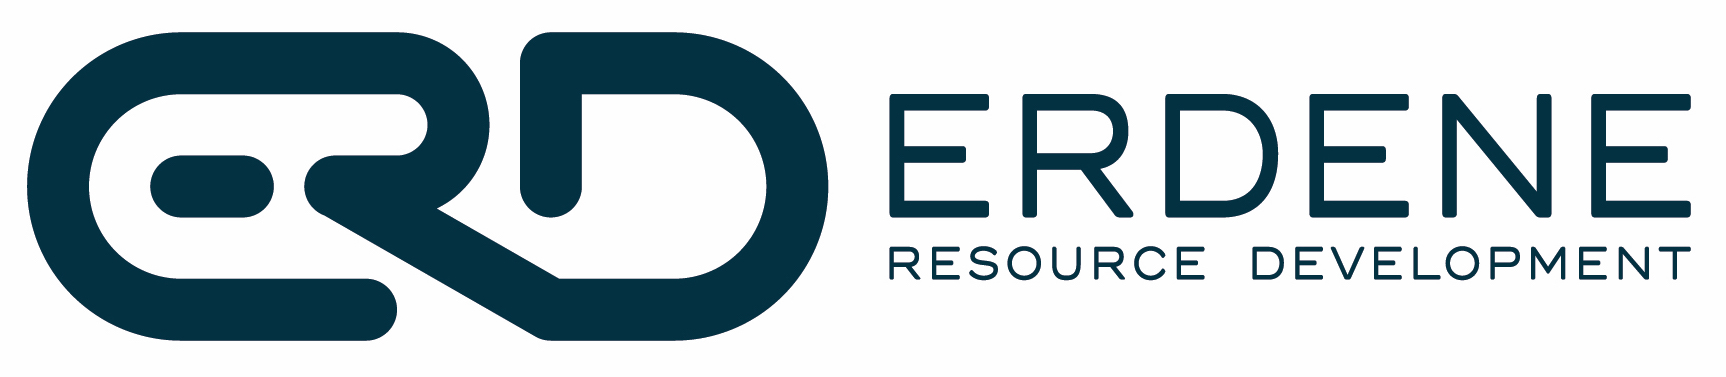 Erdene Announces Completion of The Environmental and Social Impact Assessment of the Khundii Gold Project